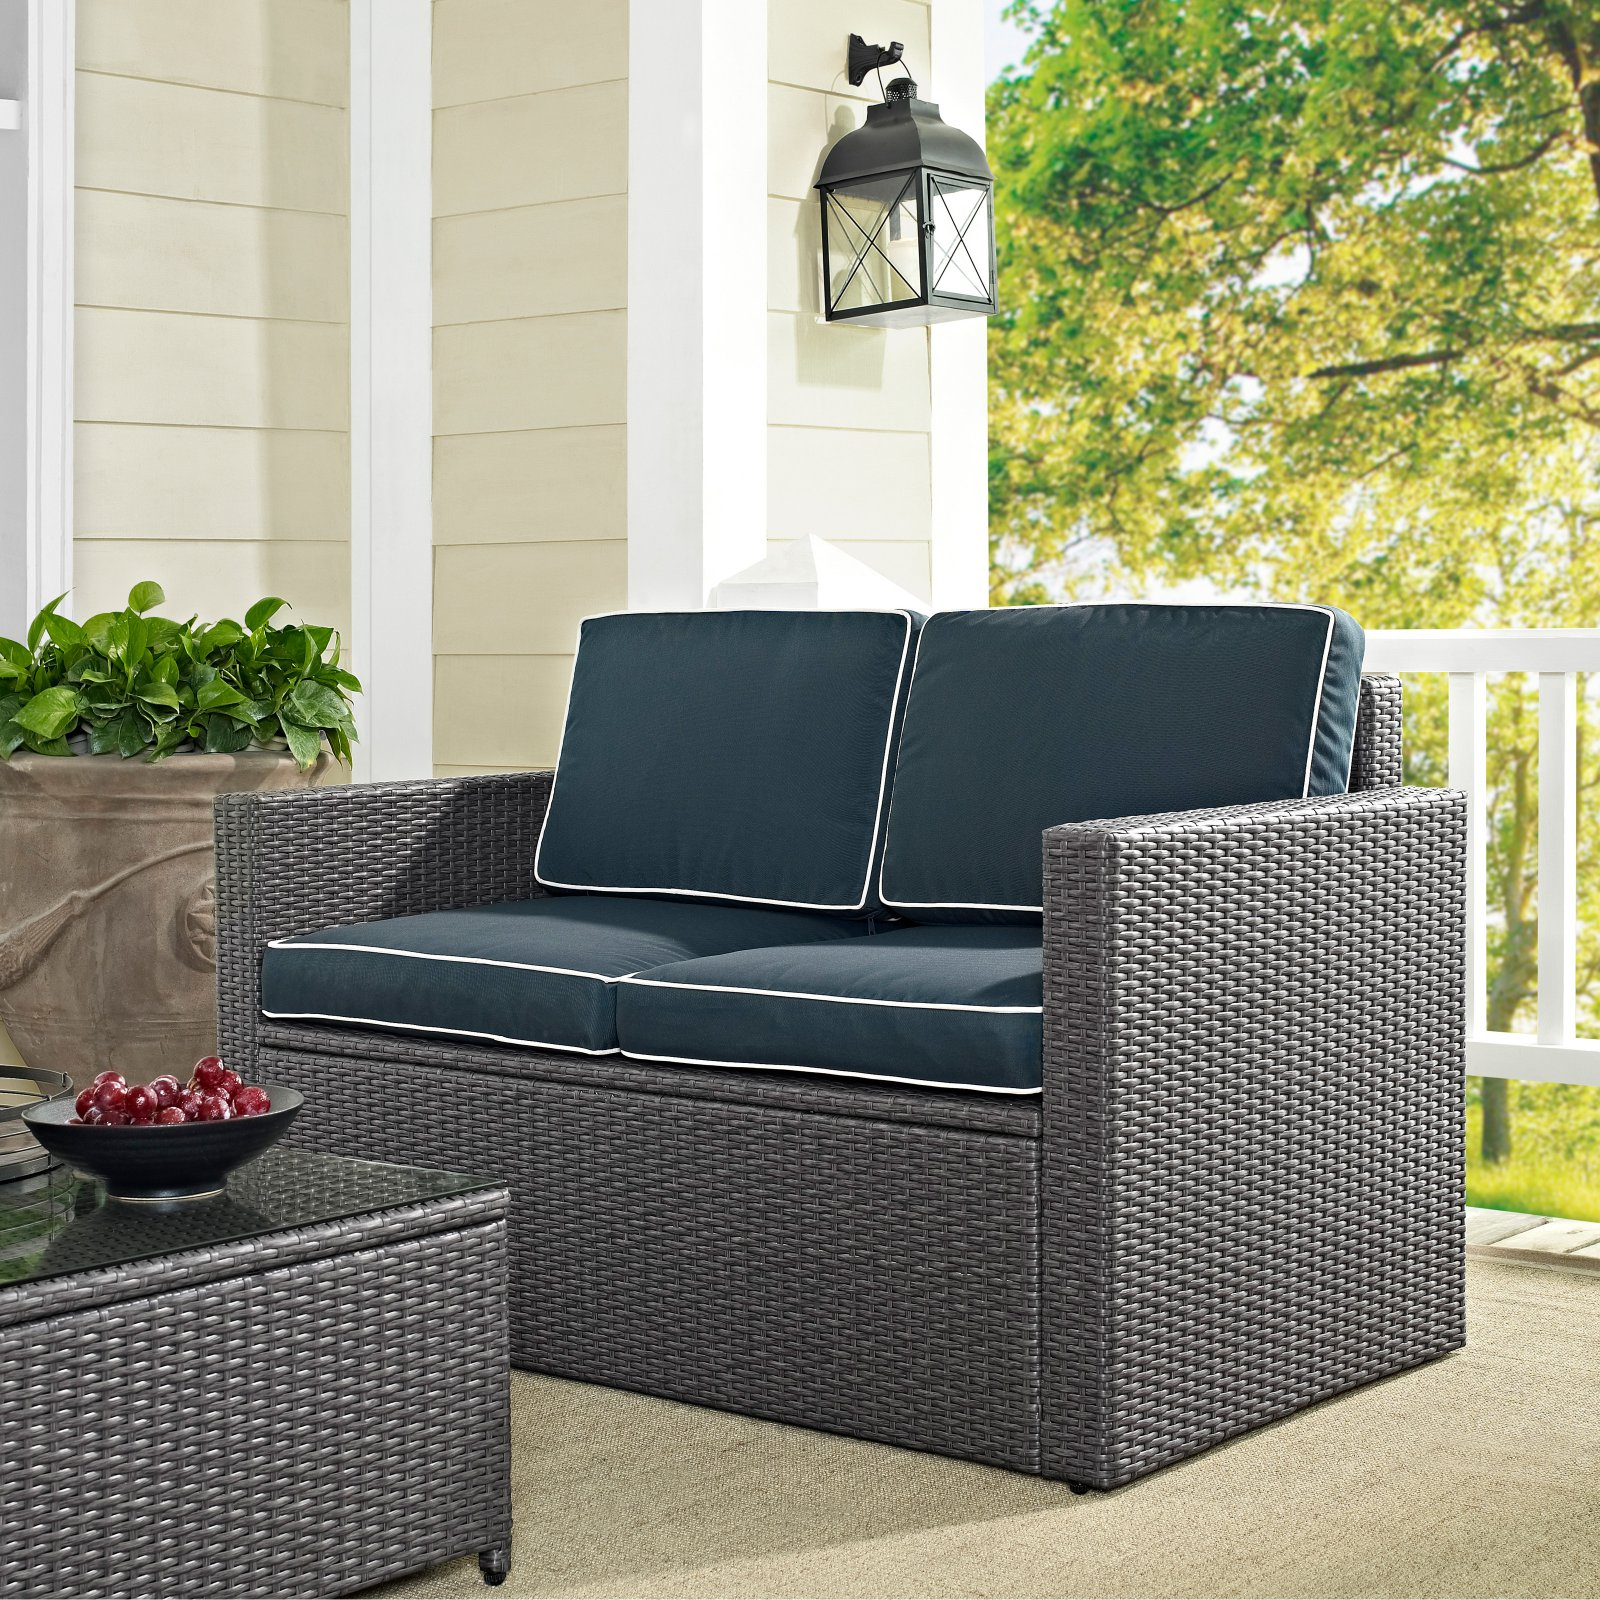 Recent Crosley Furniture Palm Harbor All Weather Wicker Outdoor In Mendelson Loveseats With Cushion (View 13 of 20)